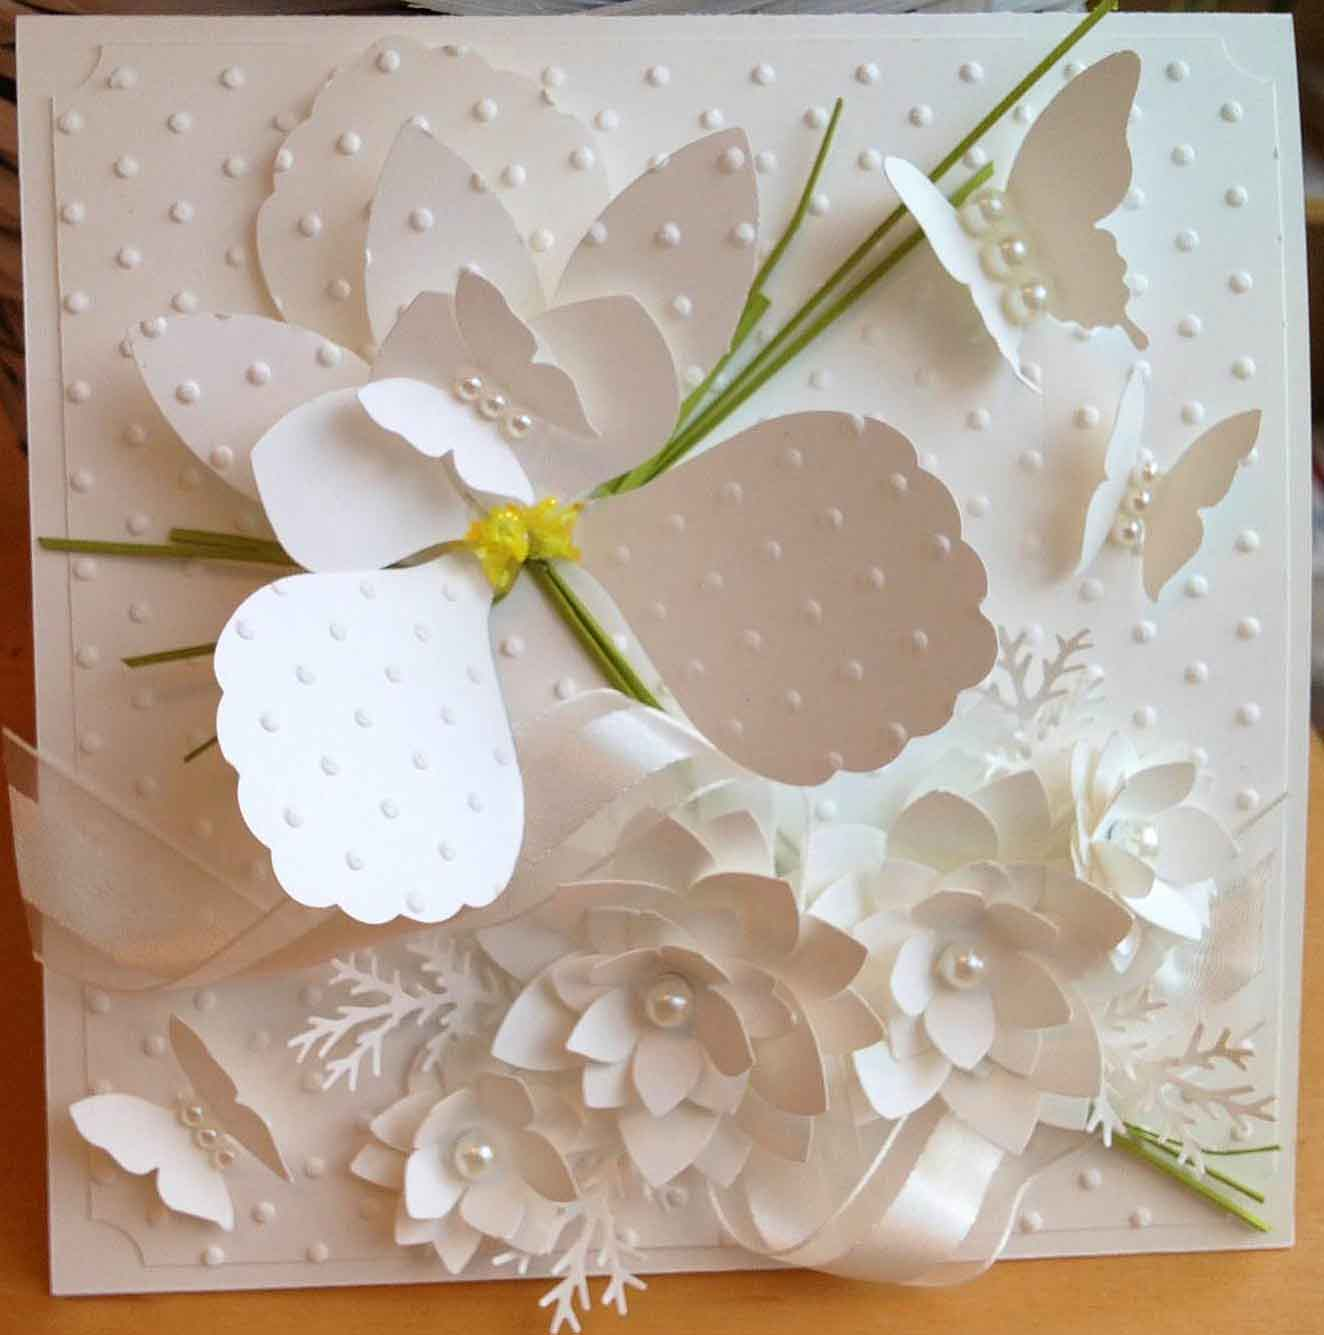 Wedding Flowers In May: Just A Thought... Cards By Amy: May Flowers Wedding Bouquet